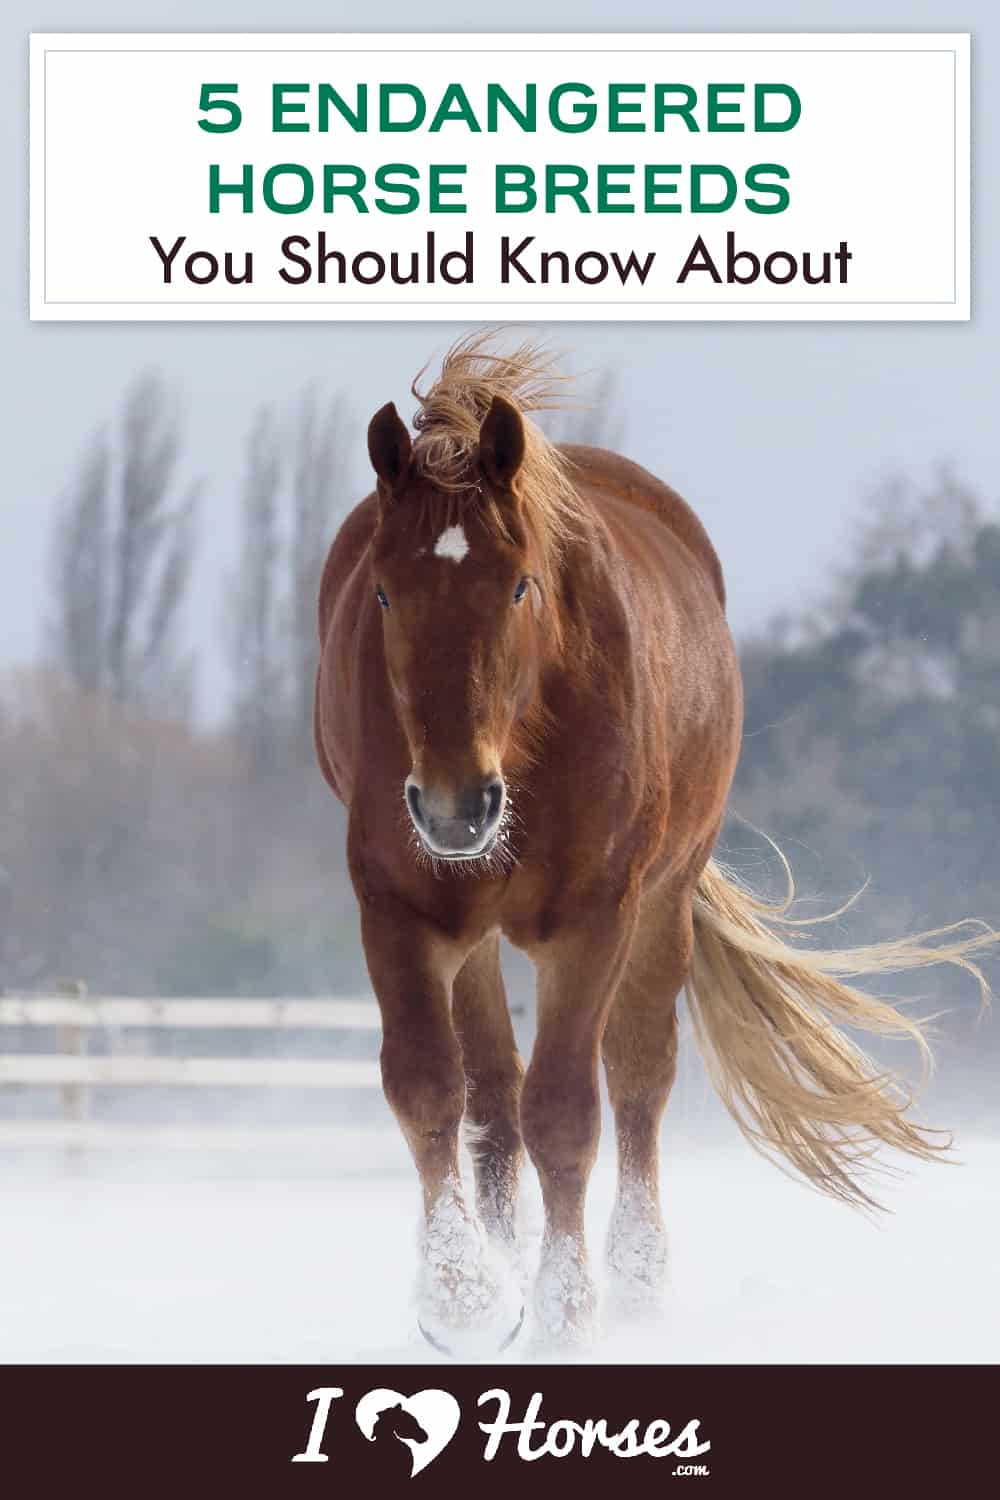 5 Endangered Horse Breeds You Should Know About